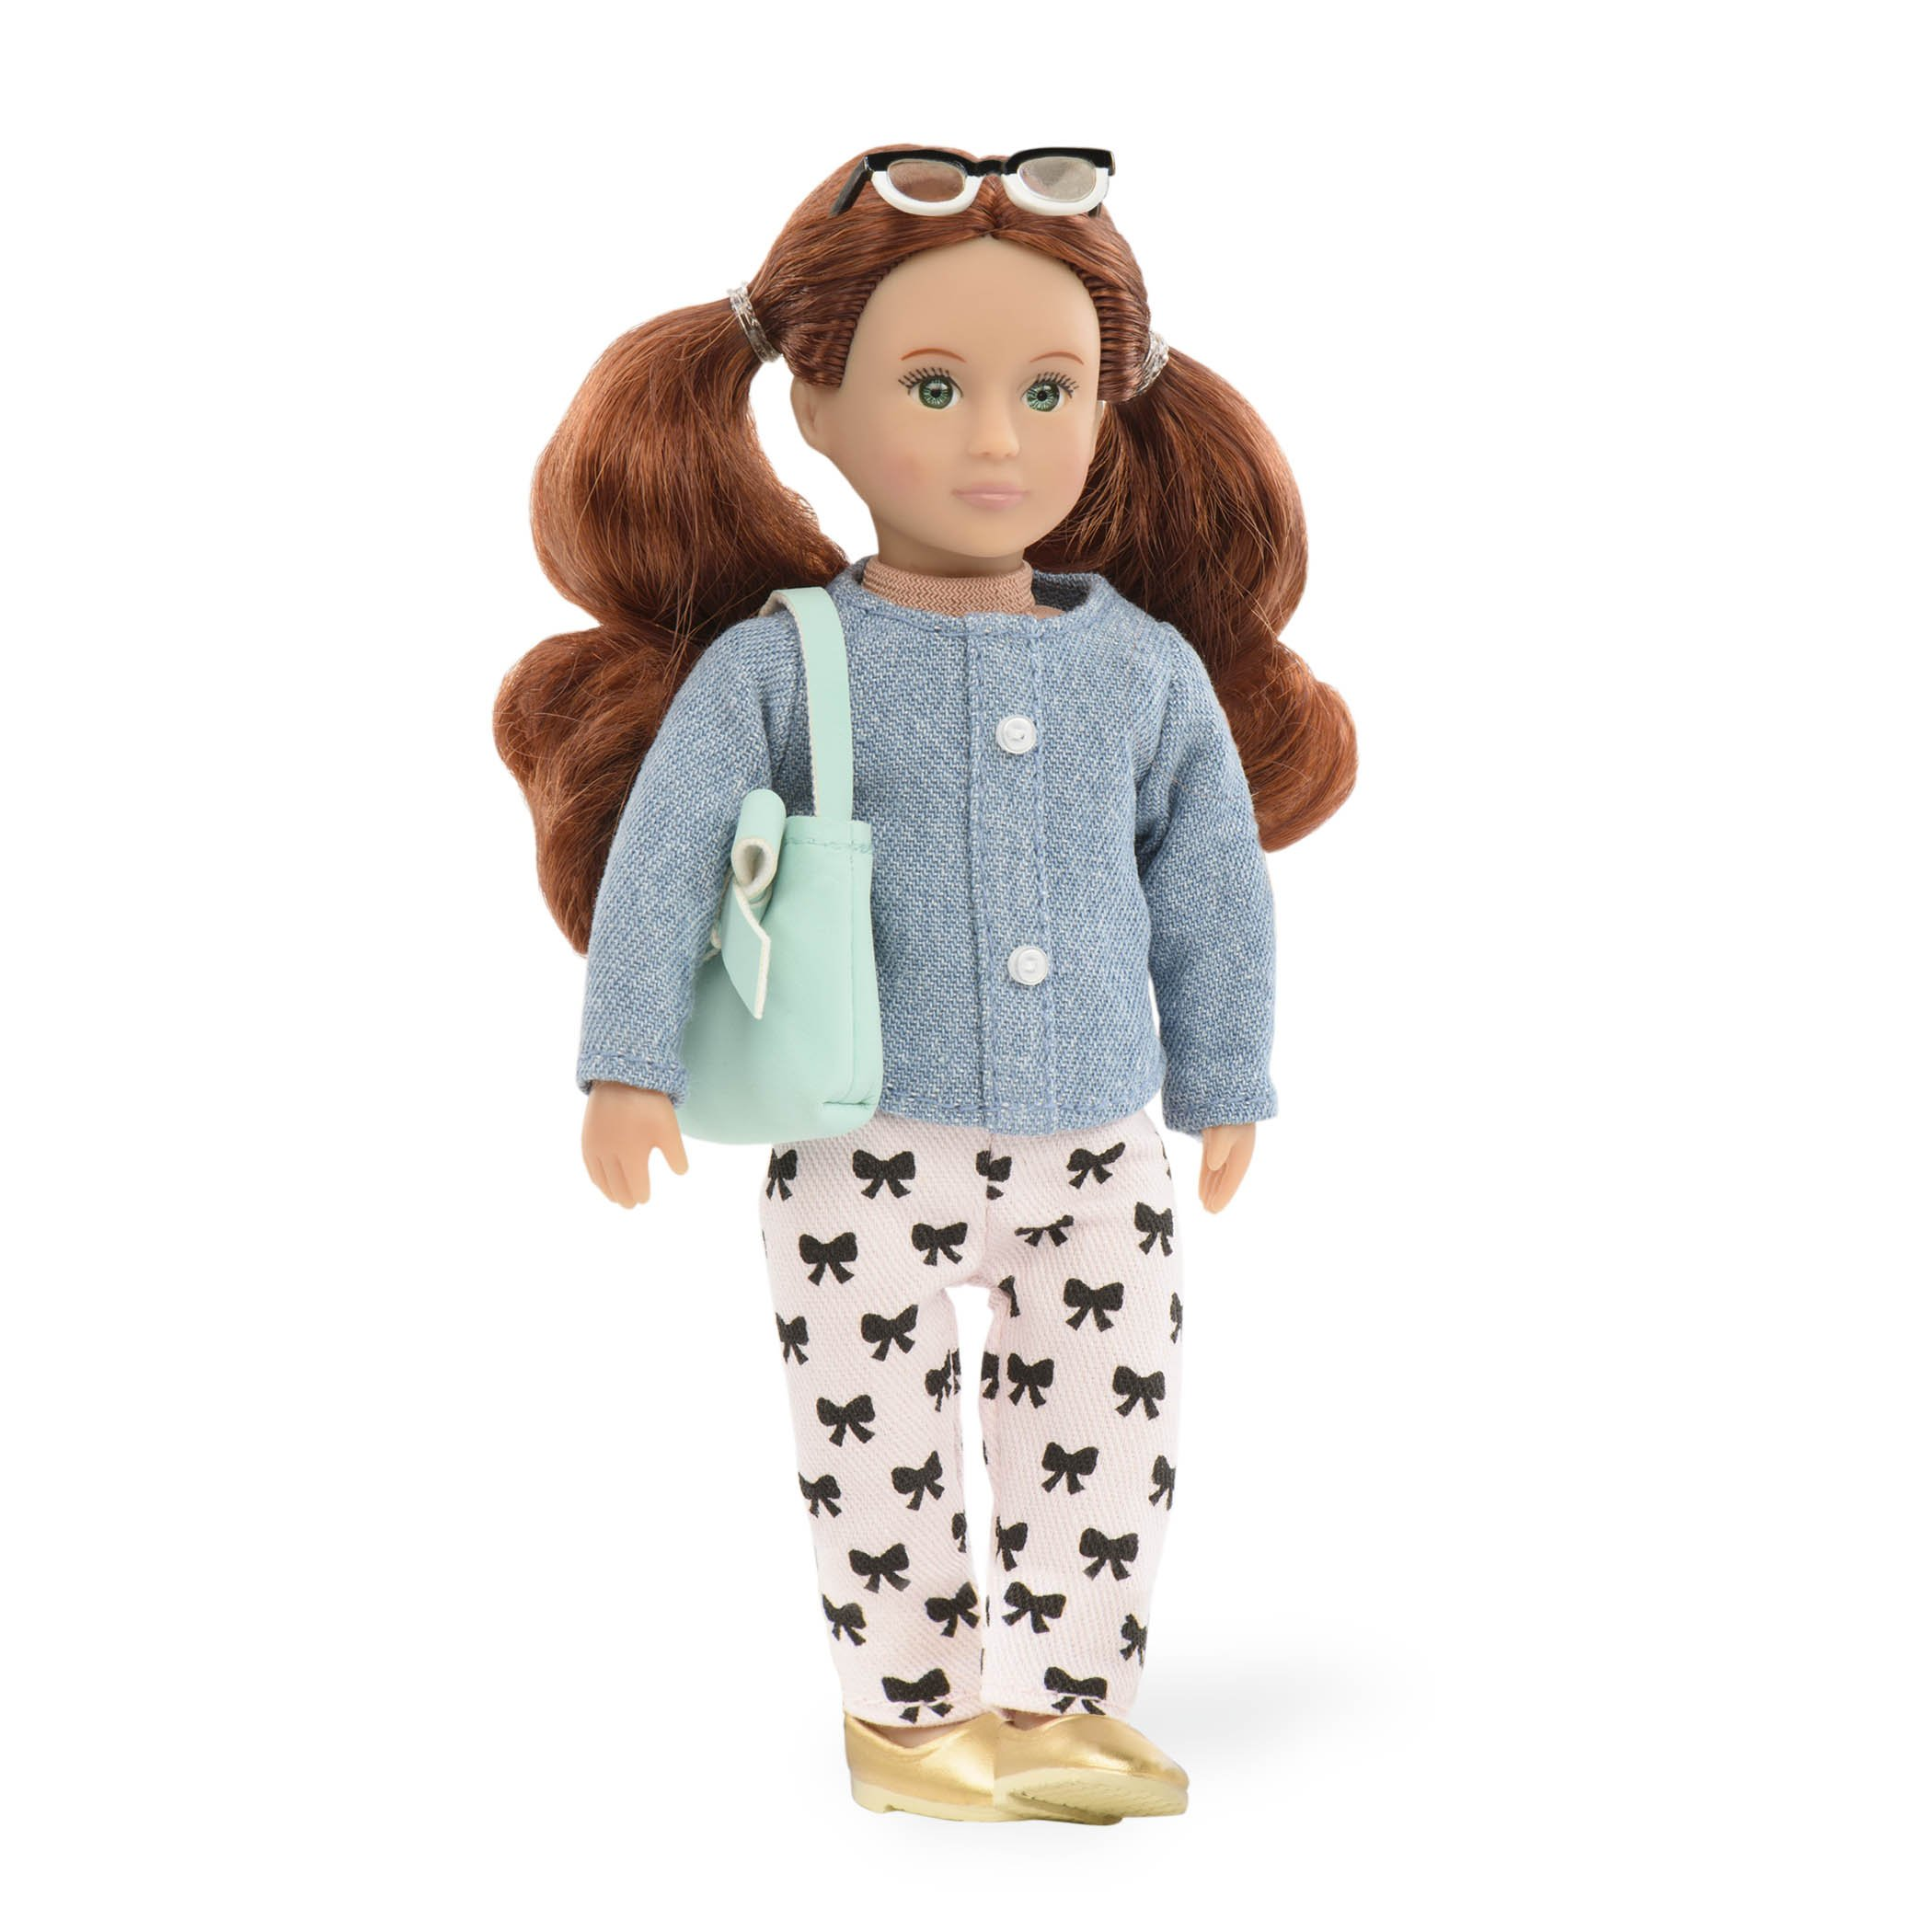 """Lori 6"""" Doll Clothes Sweet Simplicity Outfit w Purse Shoes Glasses /& Outfit Set!"""